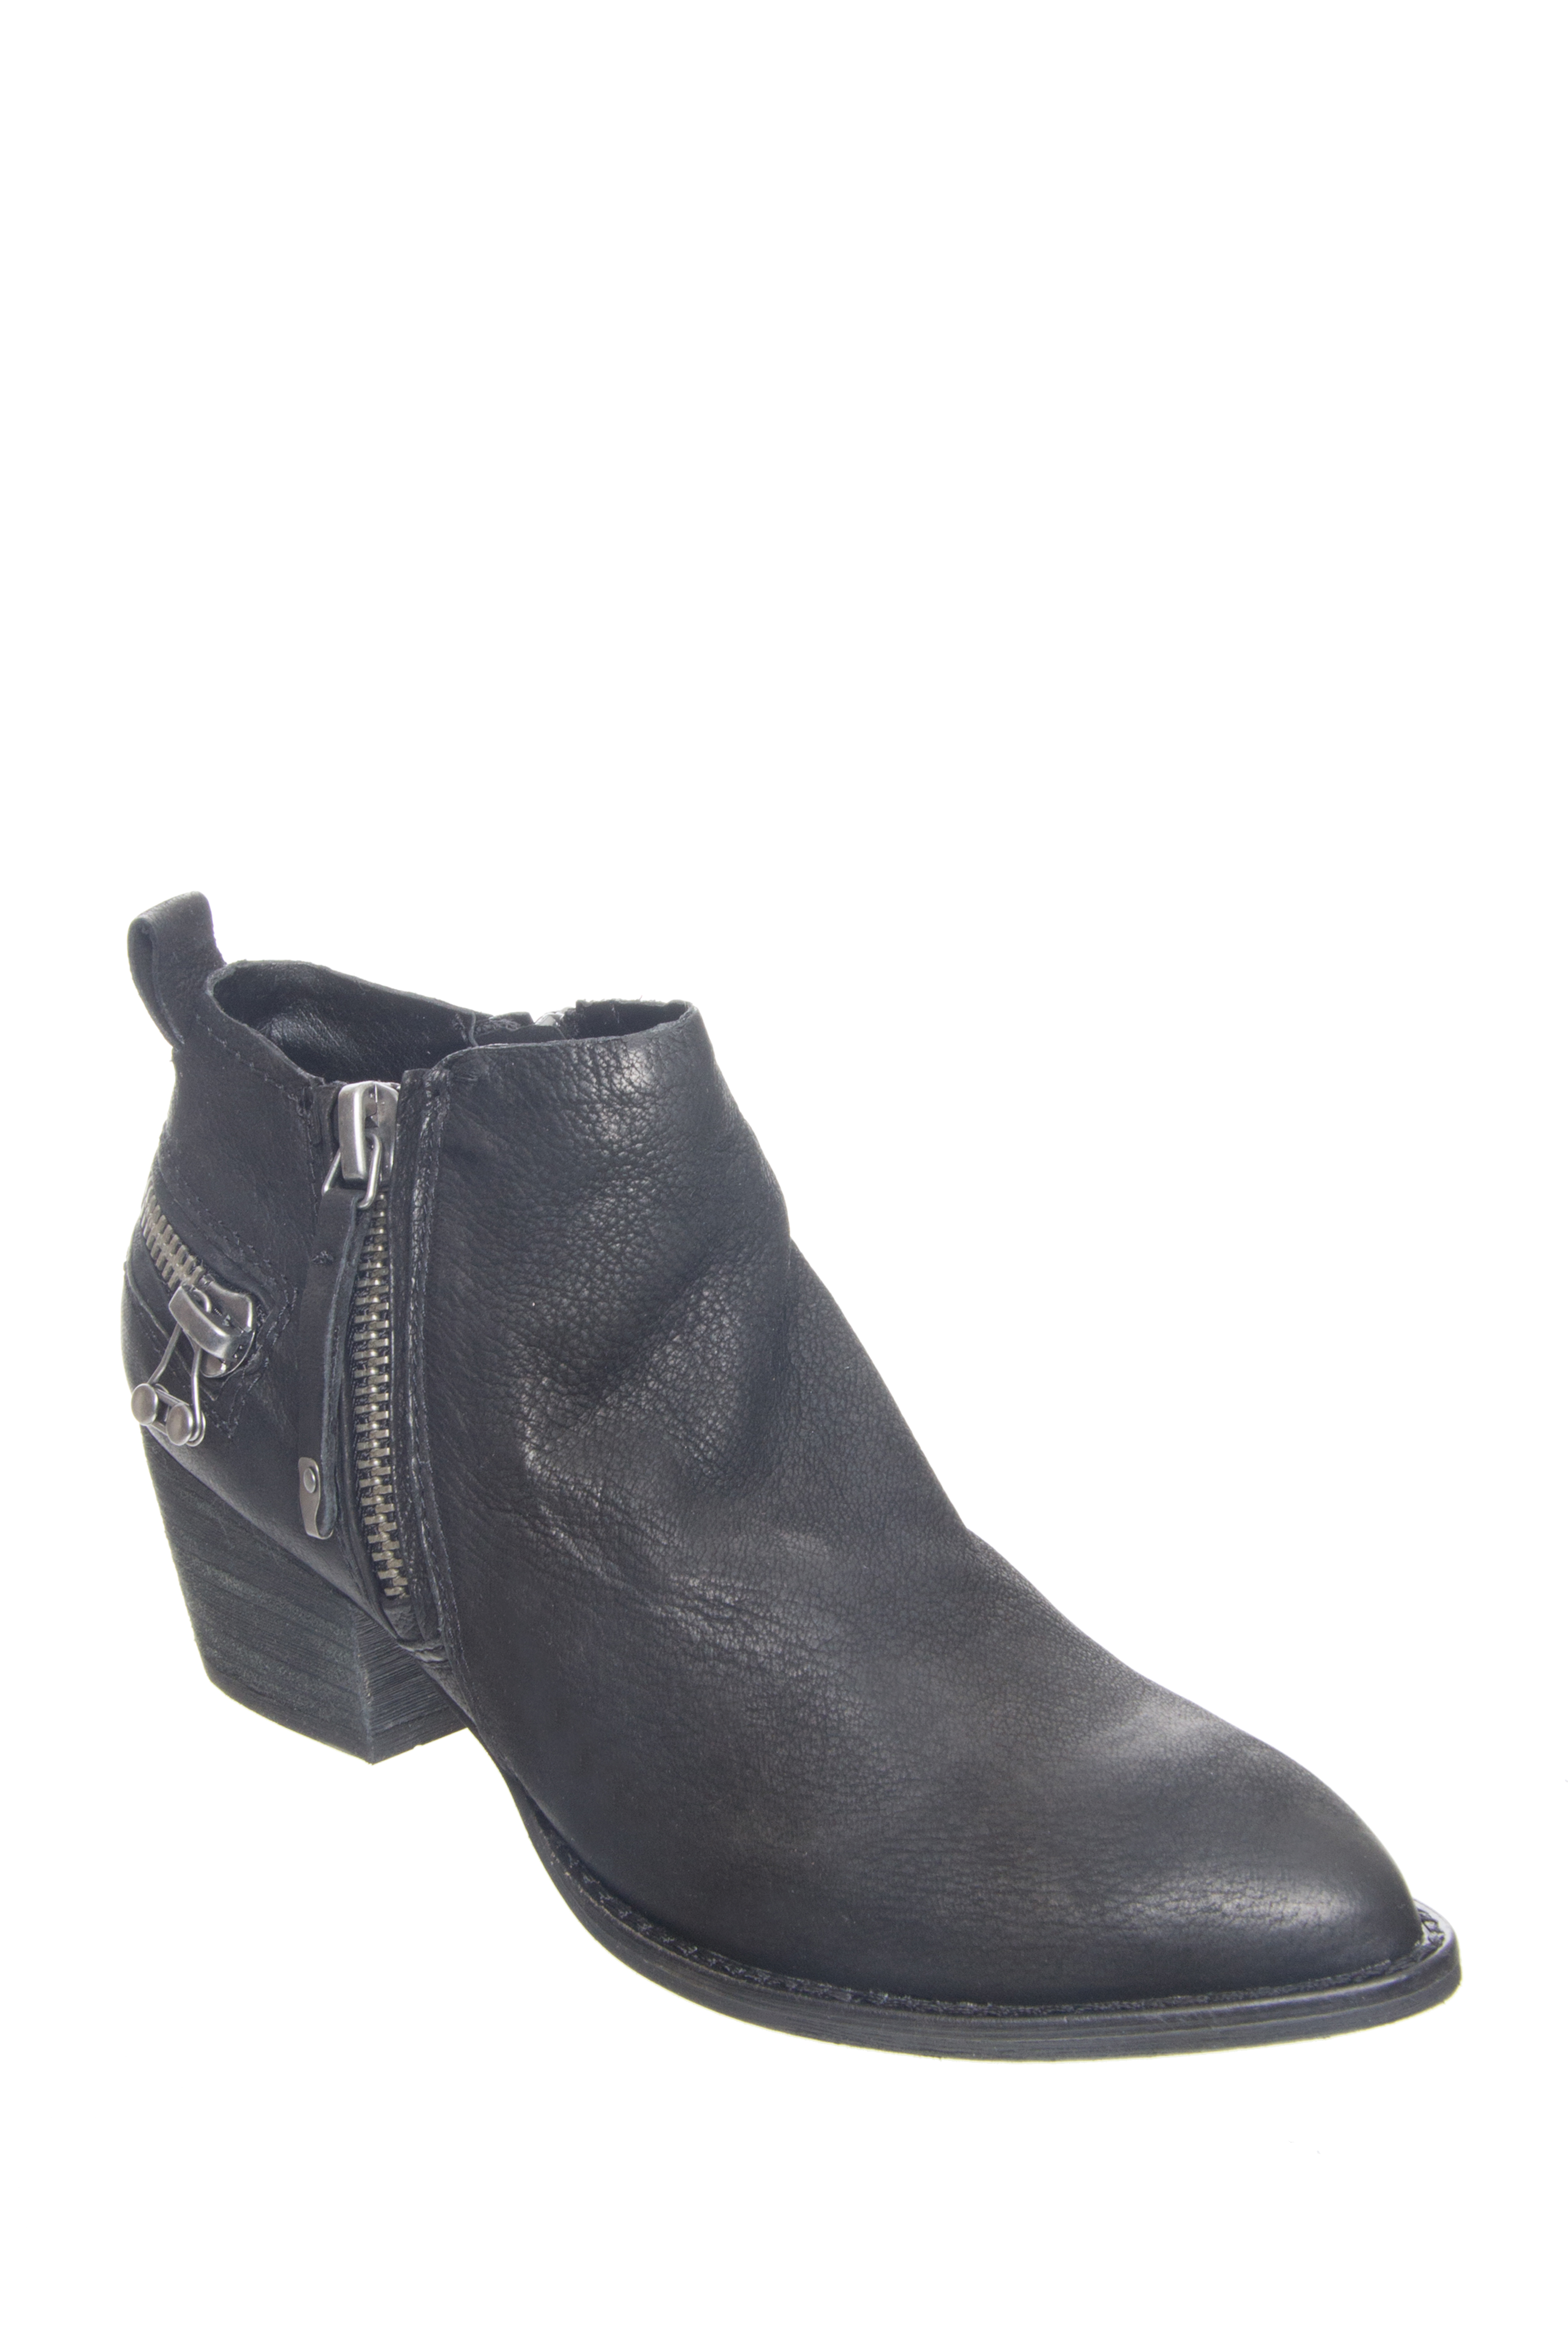 Dolce Vita Saylor Pointed-Toe Booties - Black